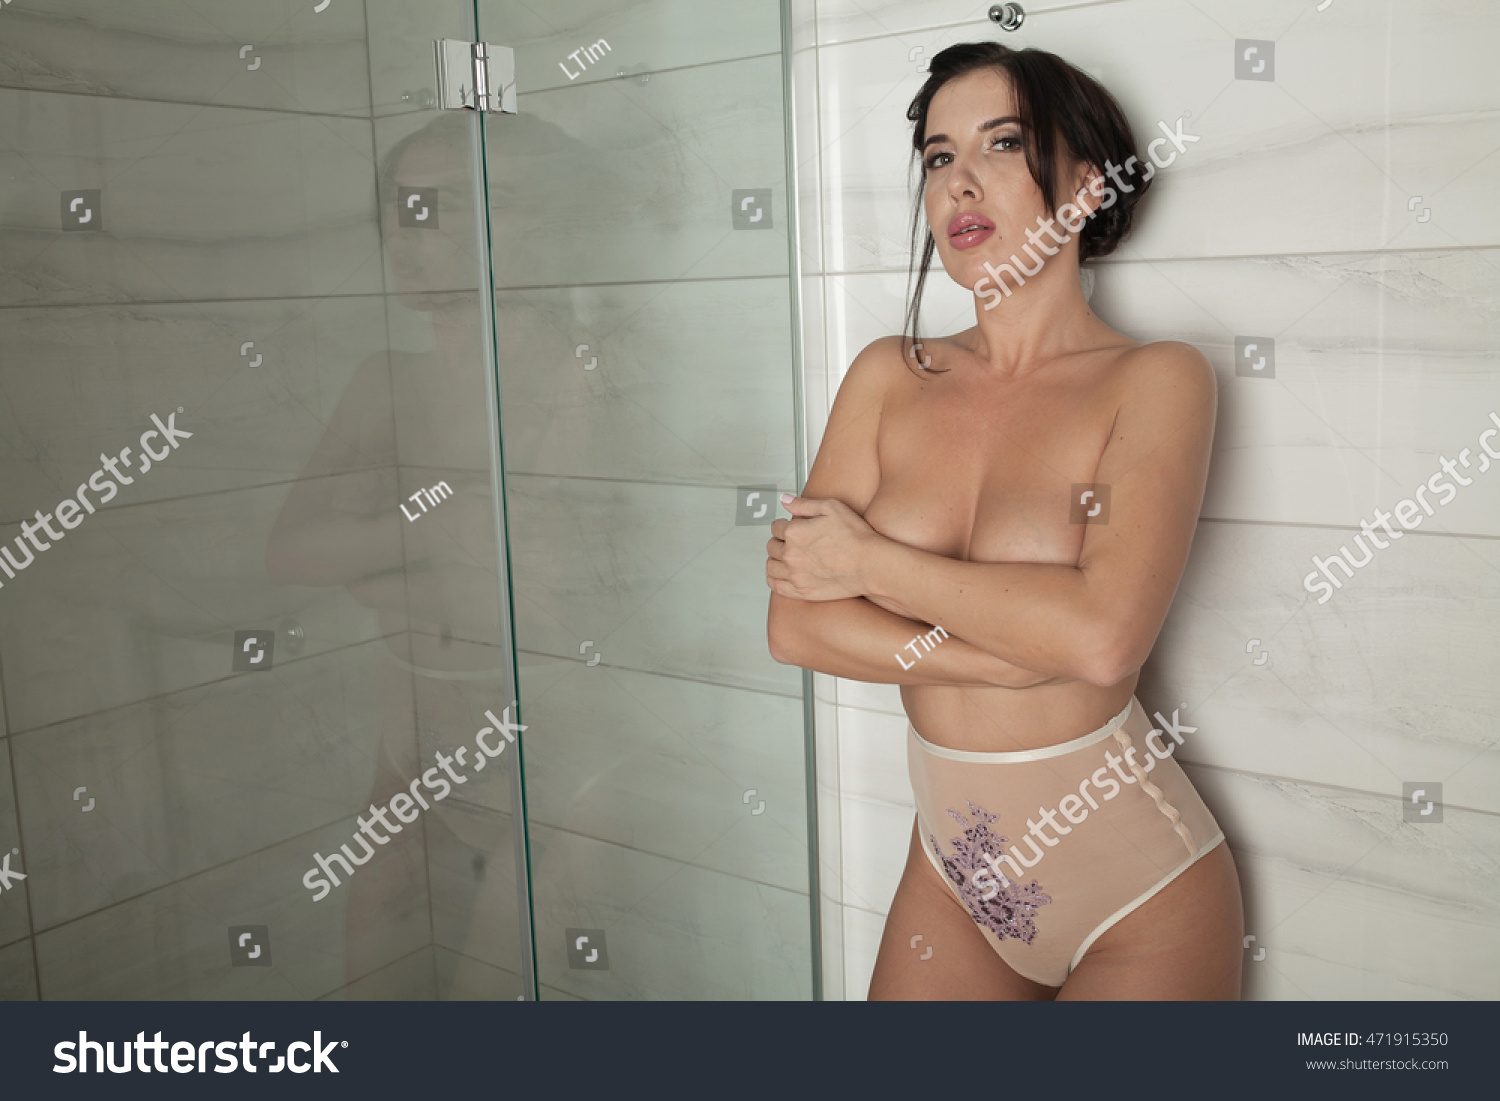 Muslim girl sex story with photo